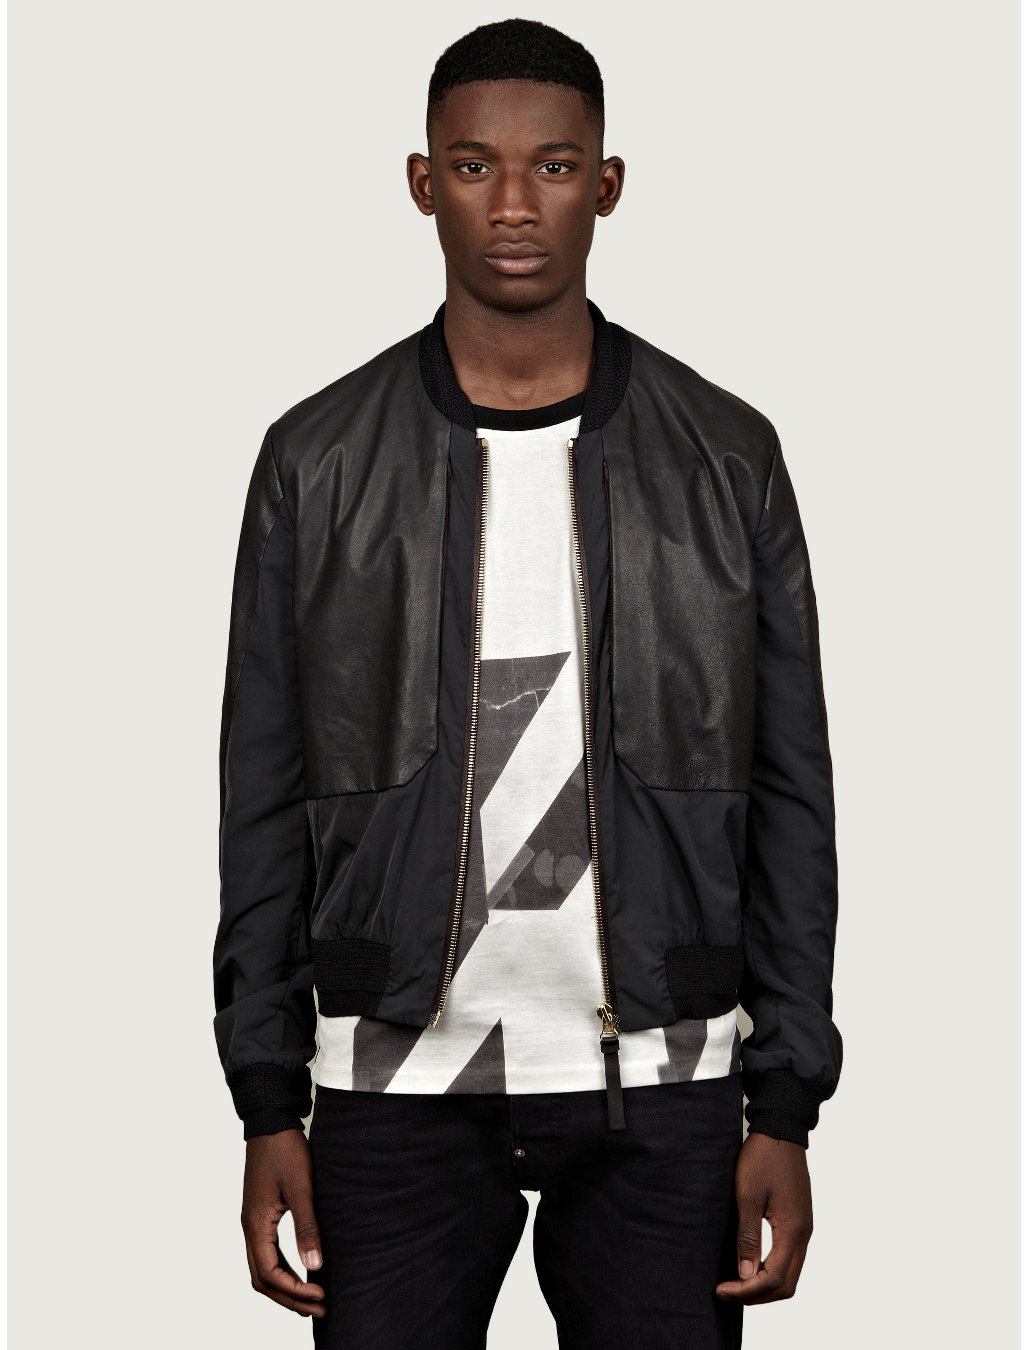 Discover men's jackets and winter coats with ASOS. Shop from a range of styles, from leather jackets, trench and college jackets with ASOS. your browser is not supported. To use ASOS, we recommend using the latest versions of Chrome, Firefox, Safari or Internet Explorer The New County bomber jacket in faux fur. $ New Look shearling.